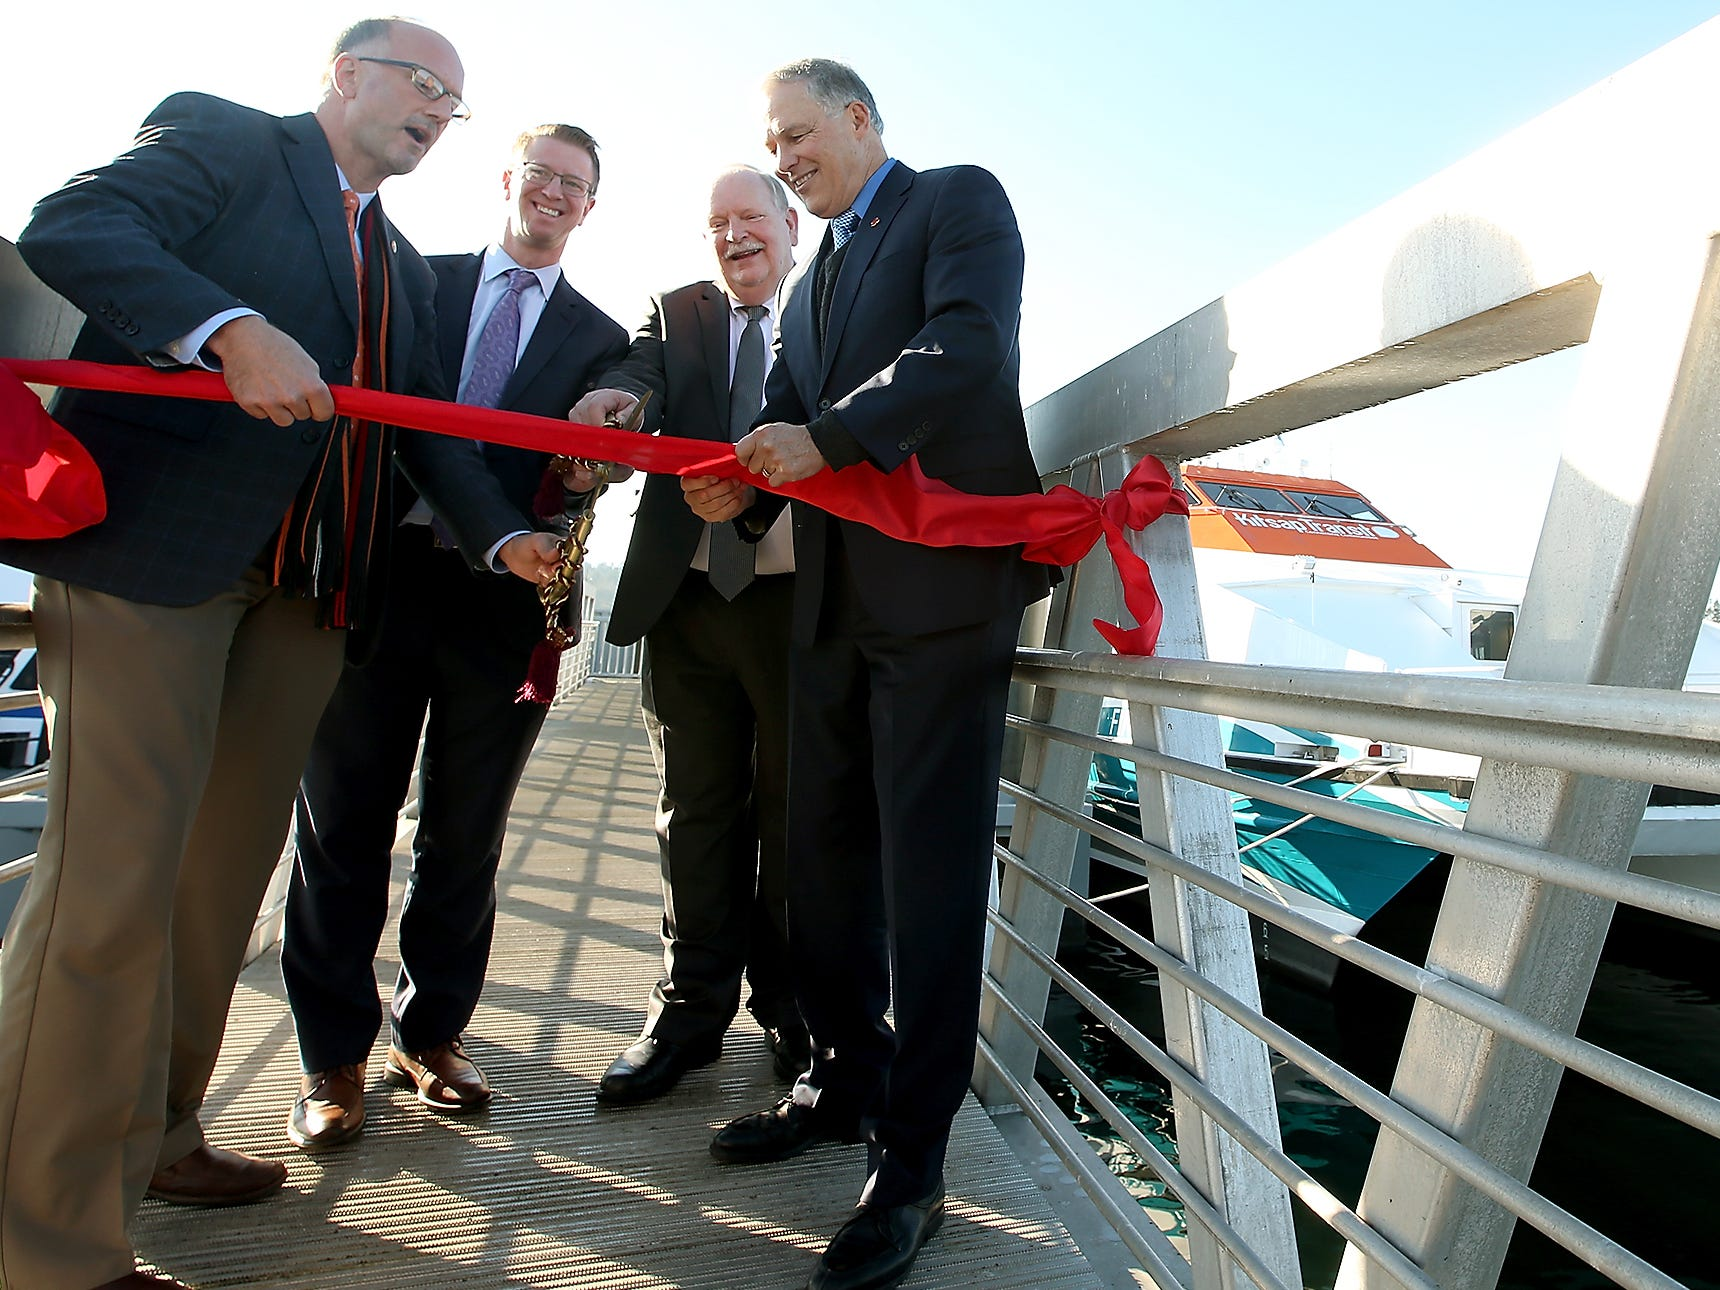 The ribbon is cut during the Grand Opening at the Port of Kingston for Kitsap Transit's new fast-ferry service between Kingston and Seattle on Monday, November 19, 2018.